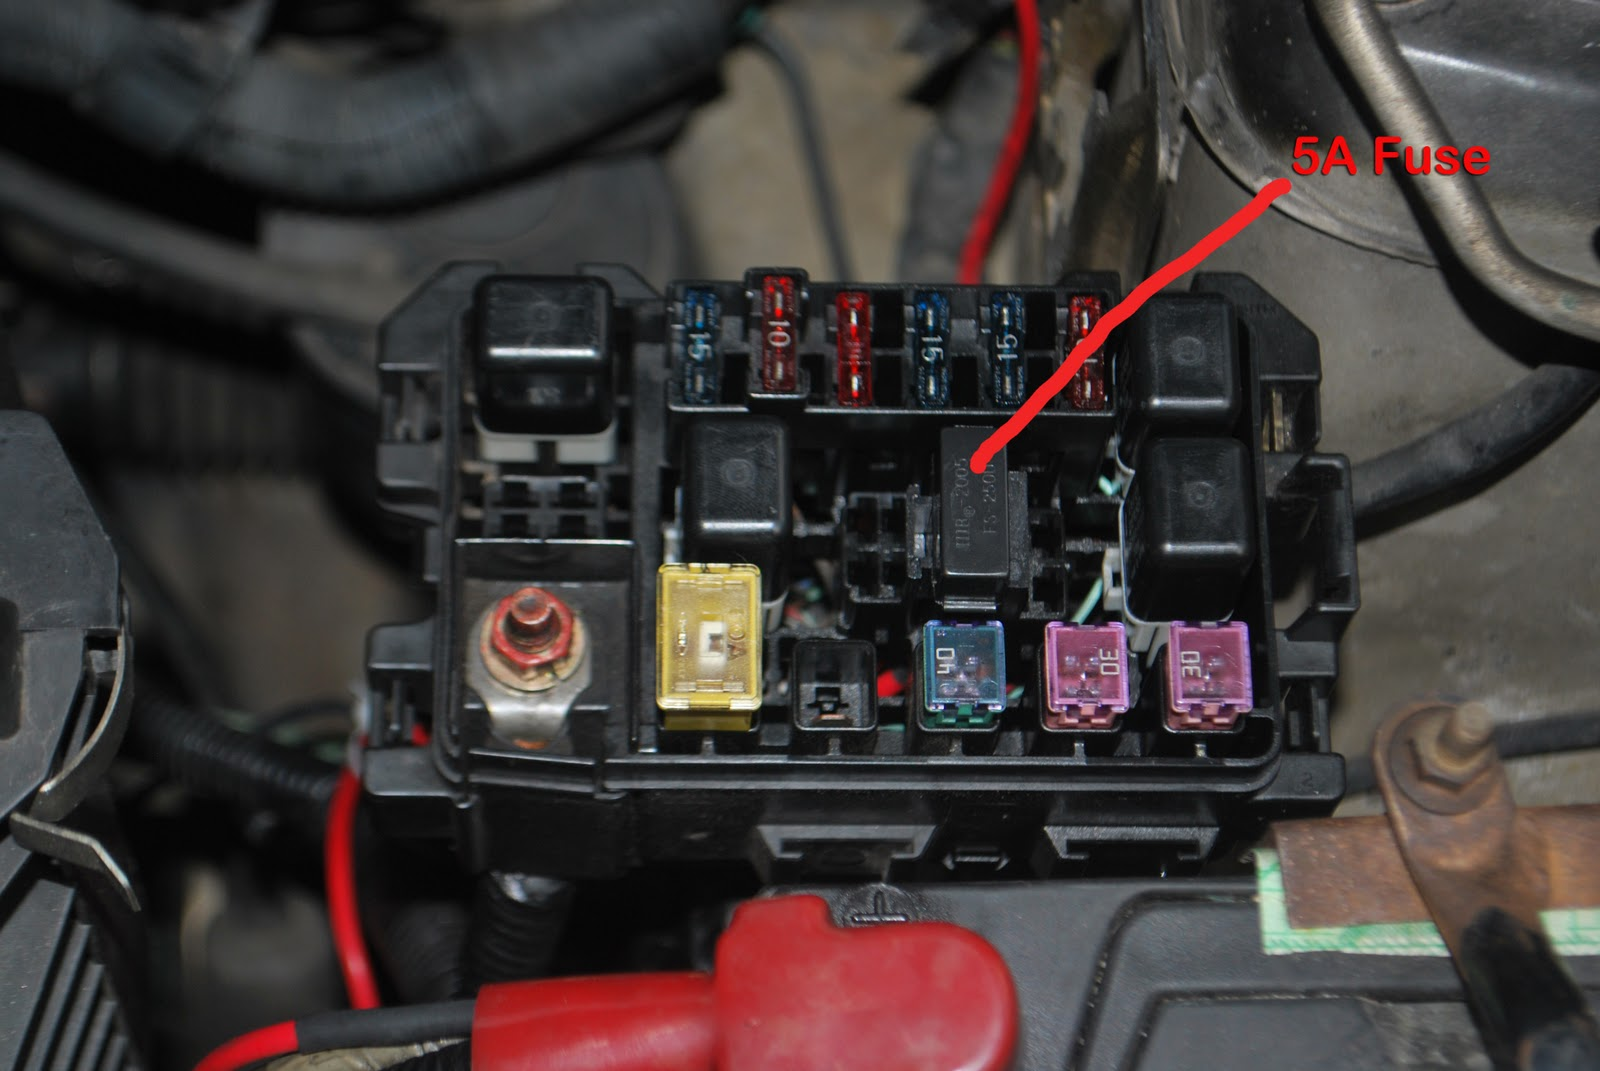 medium resolution of daihatsu cuore fuse box diagram wiring library perodua kancil 660 fuse box kancil fuse box schematic